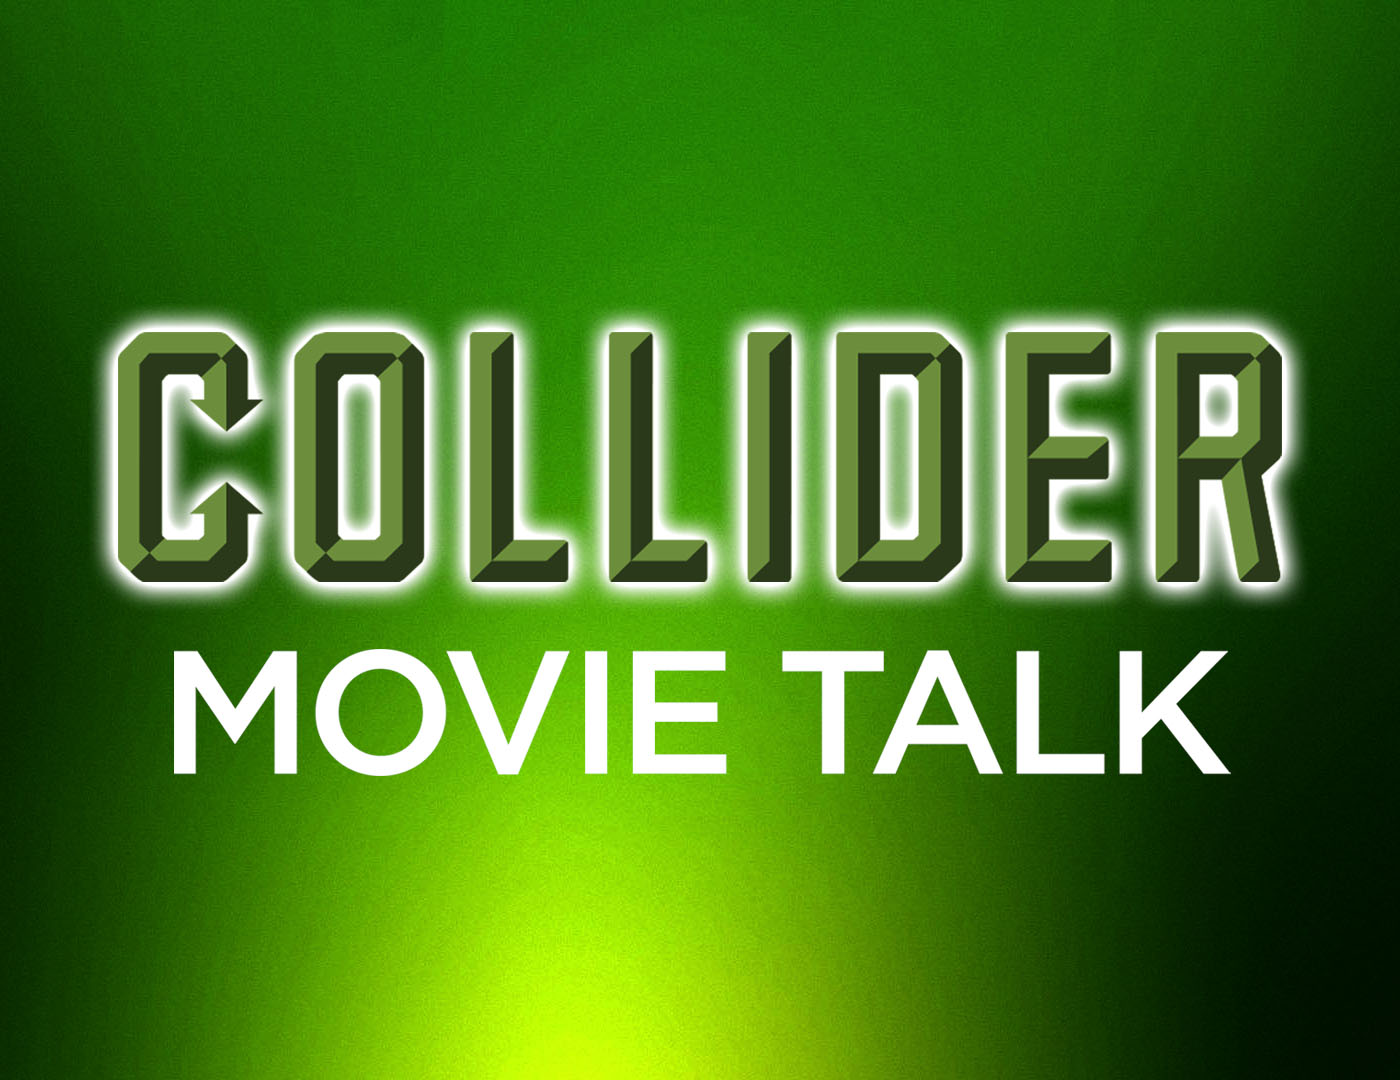 John Wick Director In Talks For Deadpool 2 - Collider Movie Talk